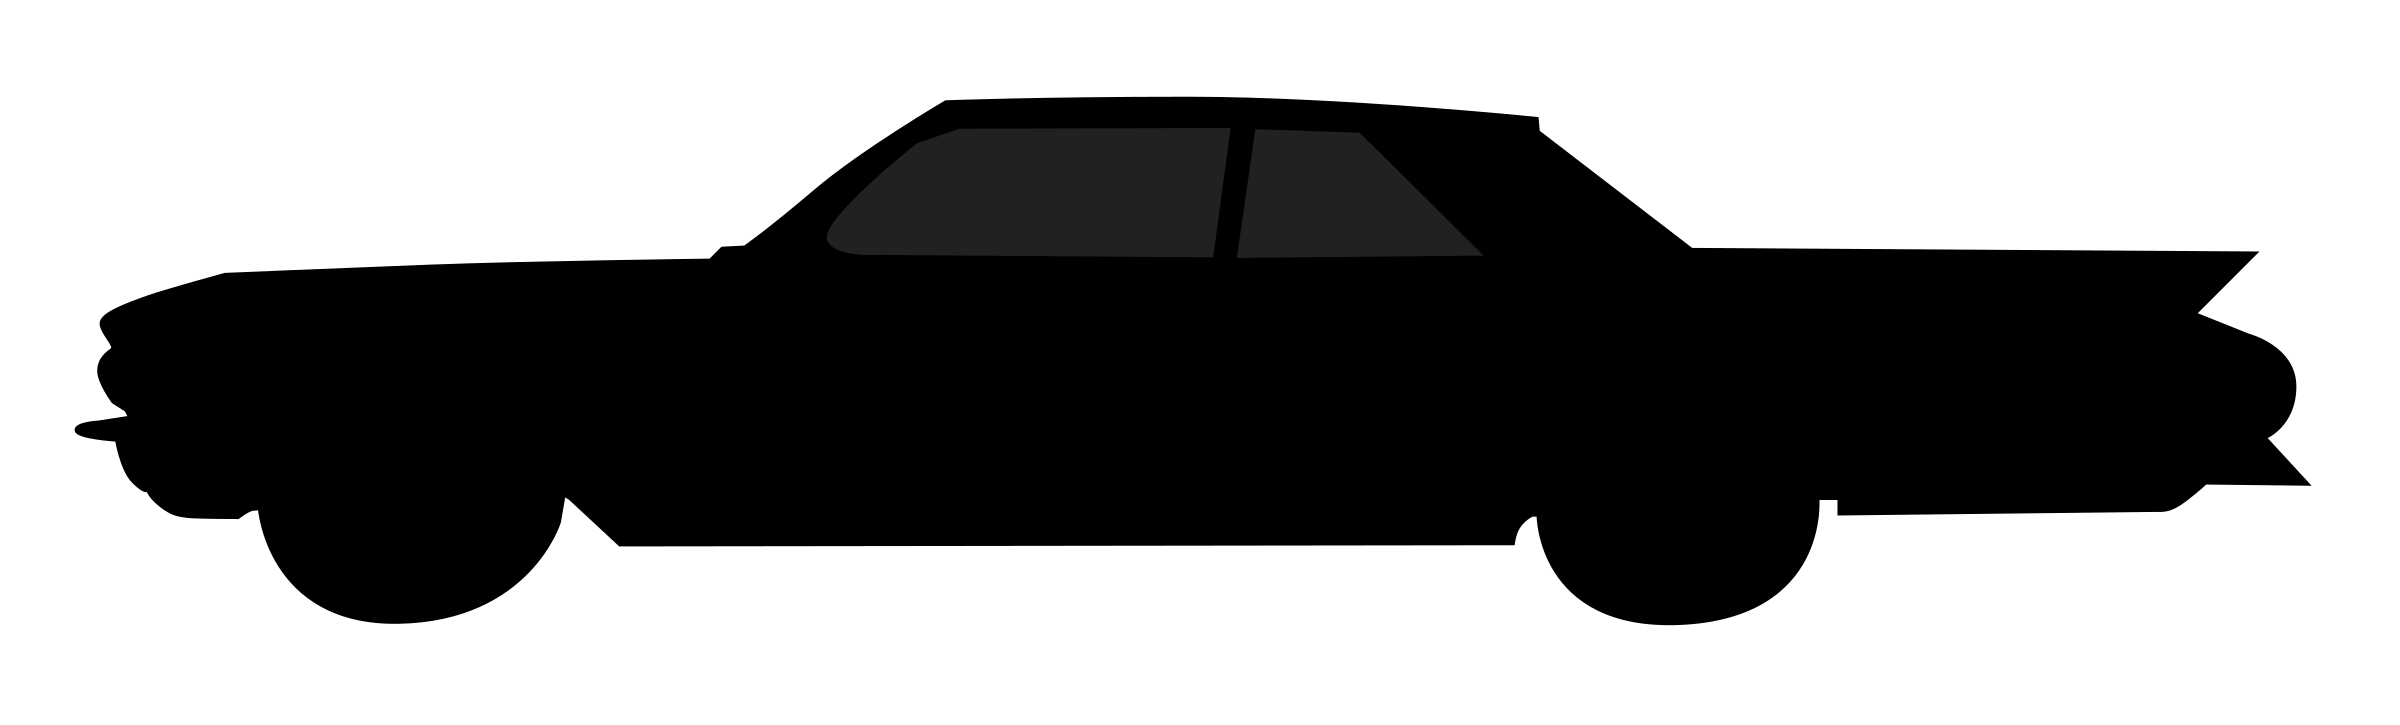 Trabant Clipart 20 Muscle Car Silhouette Png For Free Download On Ya Webdesign